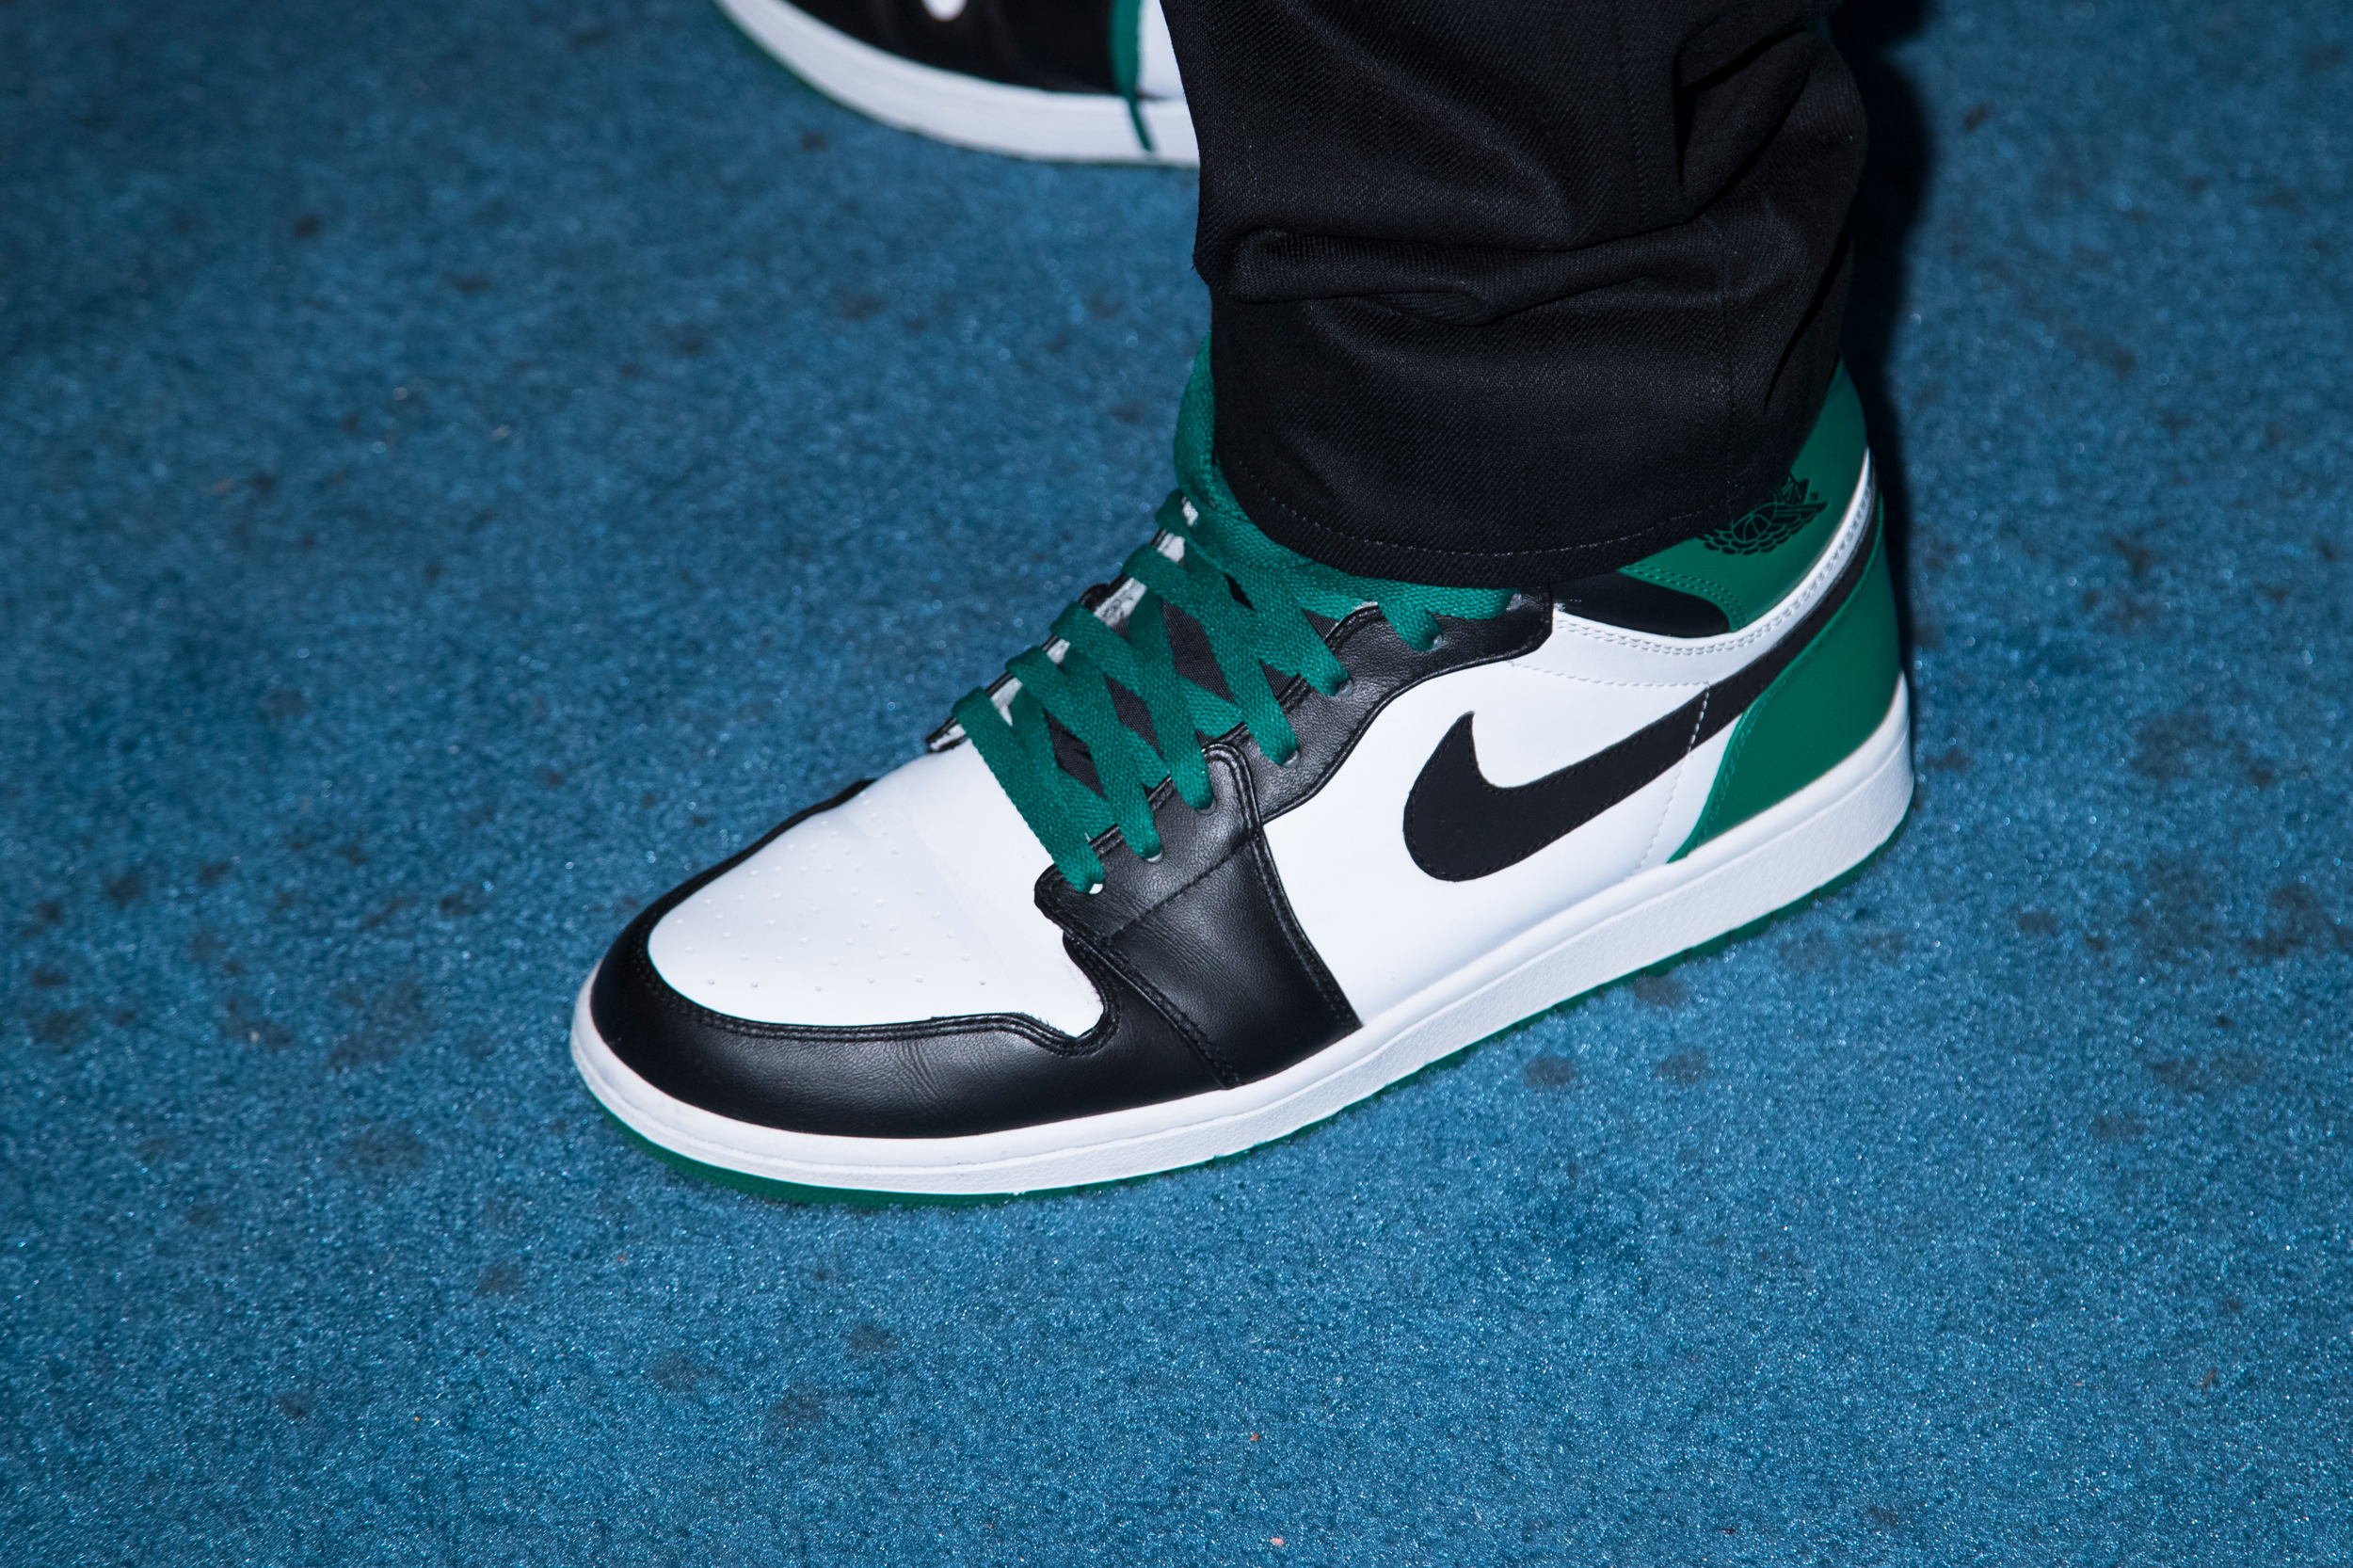 9de17fb77f5 Nike shoes worn by comedian Dave Chappelle at the NBA All-Star Game in New  Orleans.